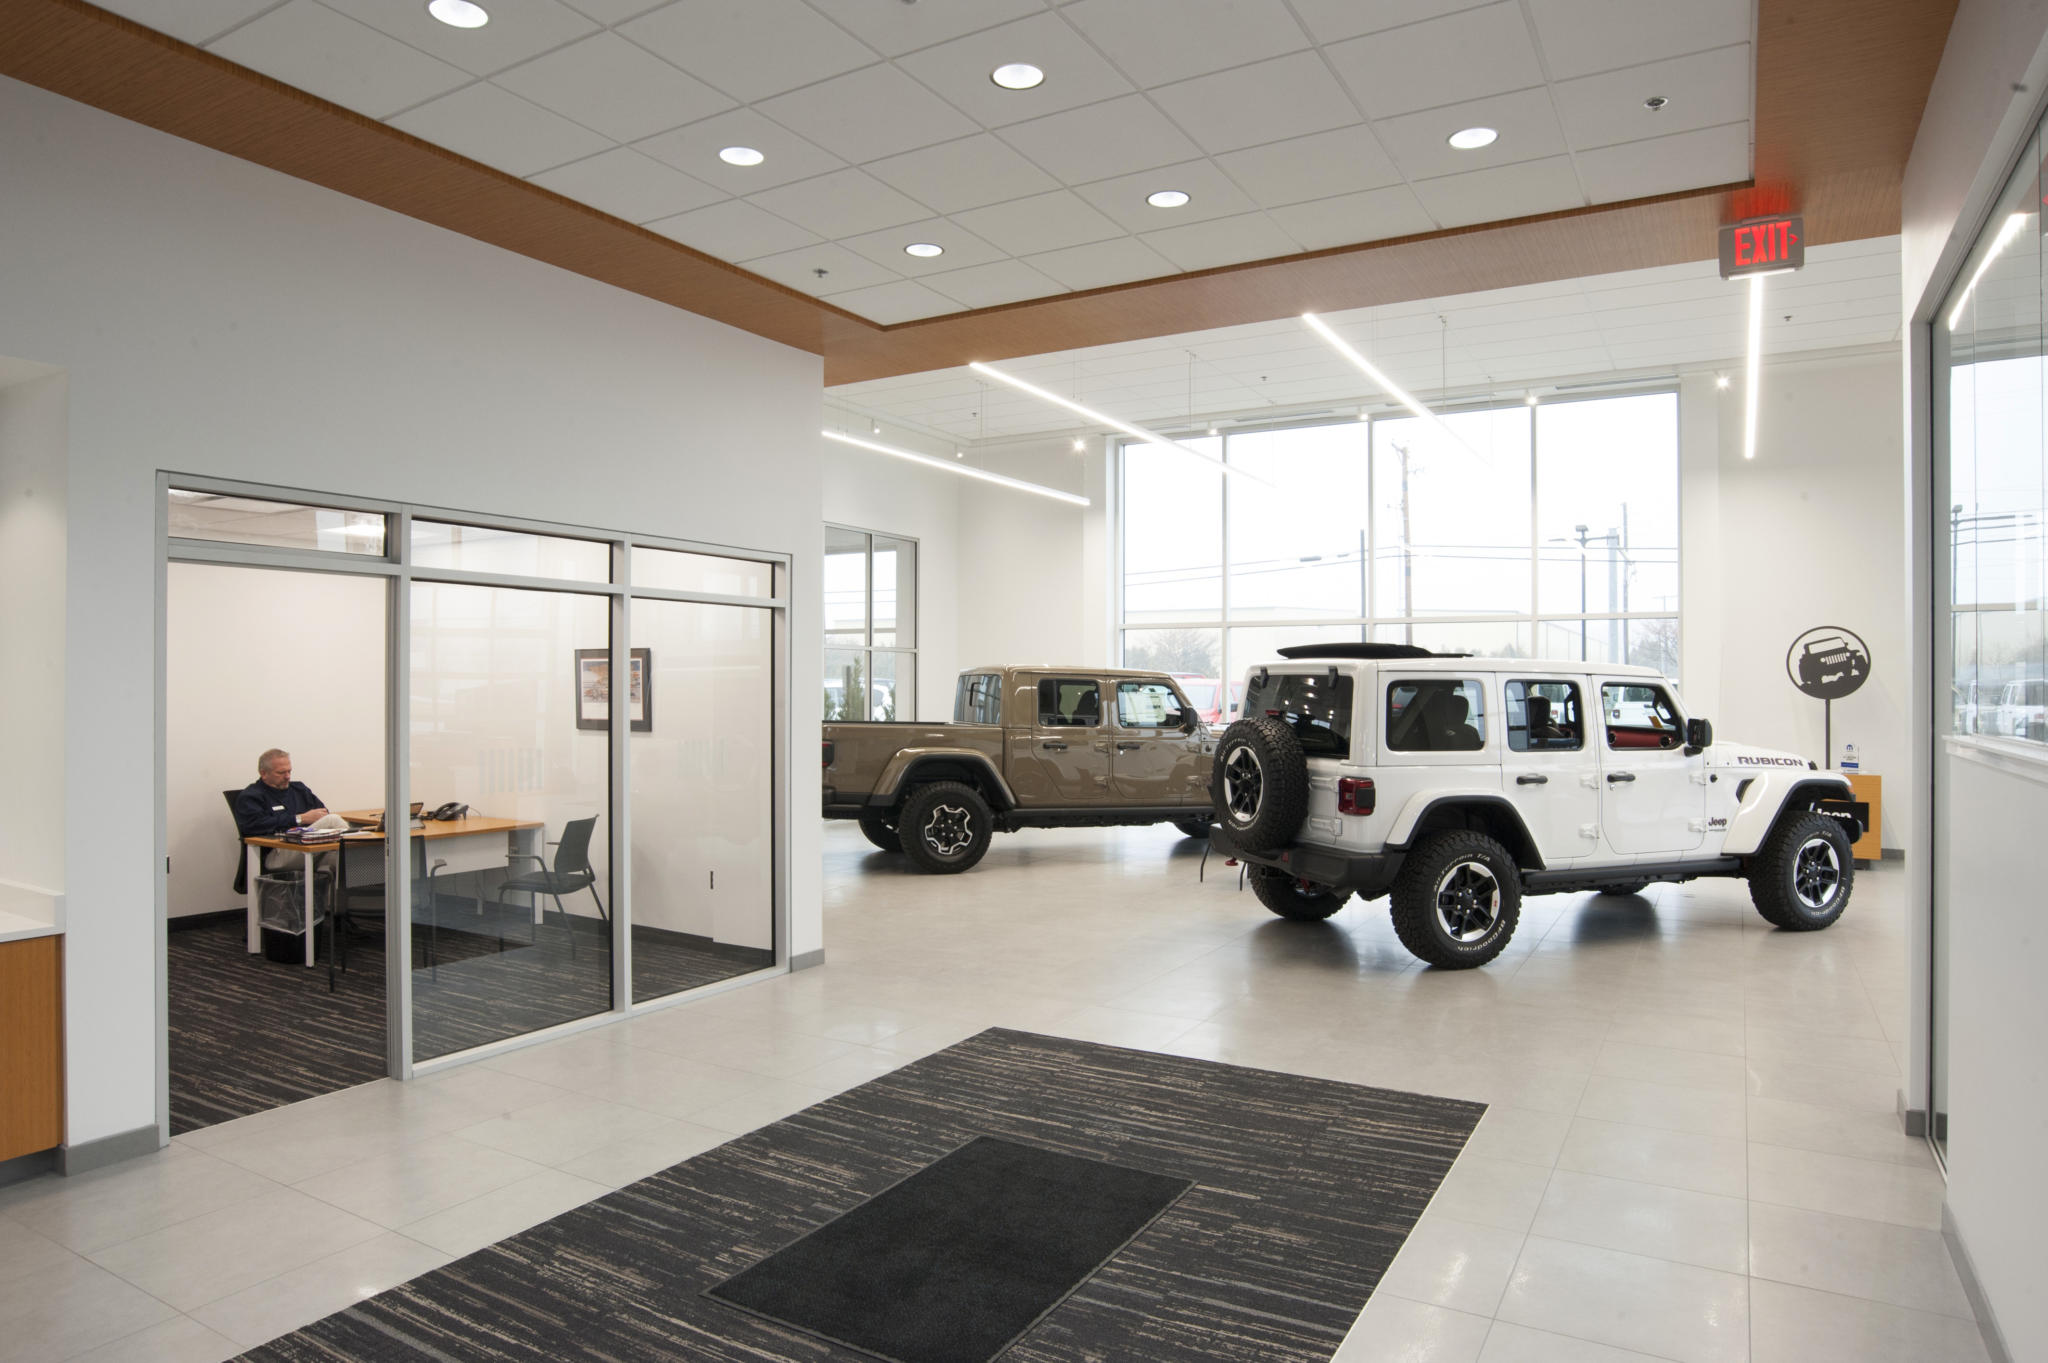 image of lobby with vehicles inside